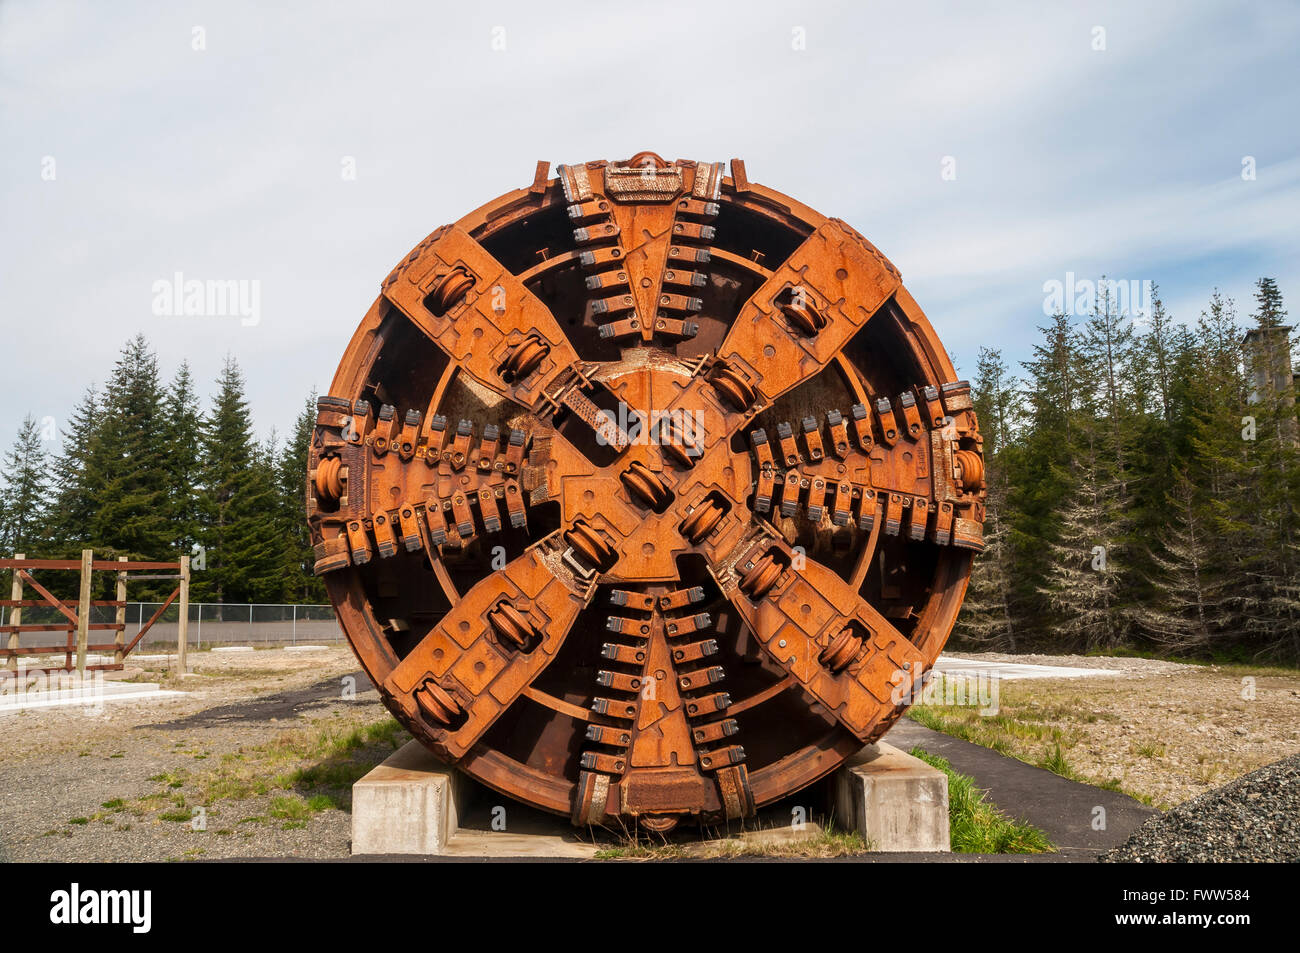 Horizontal image of a rusty tunnel boring machine cutter head. - Stock Image